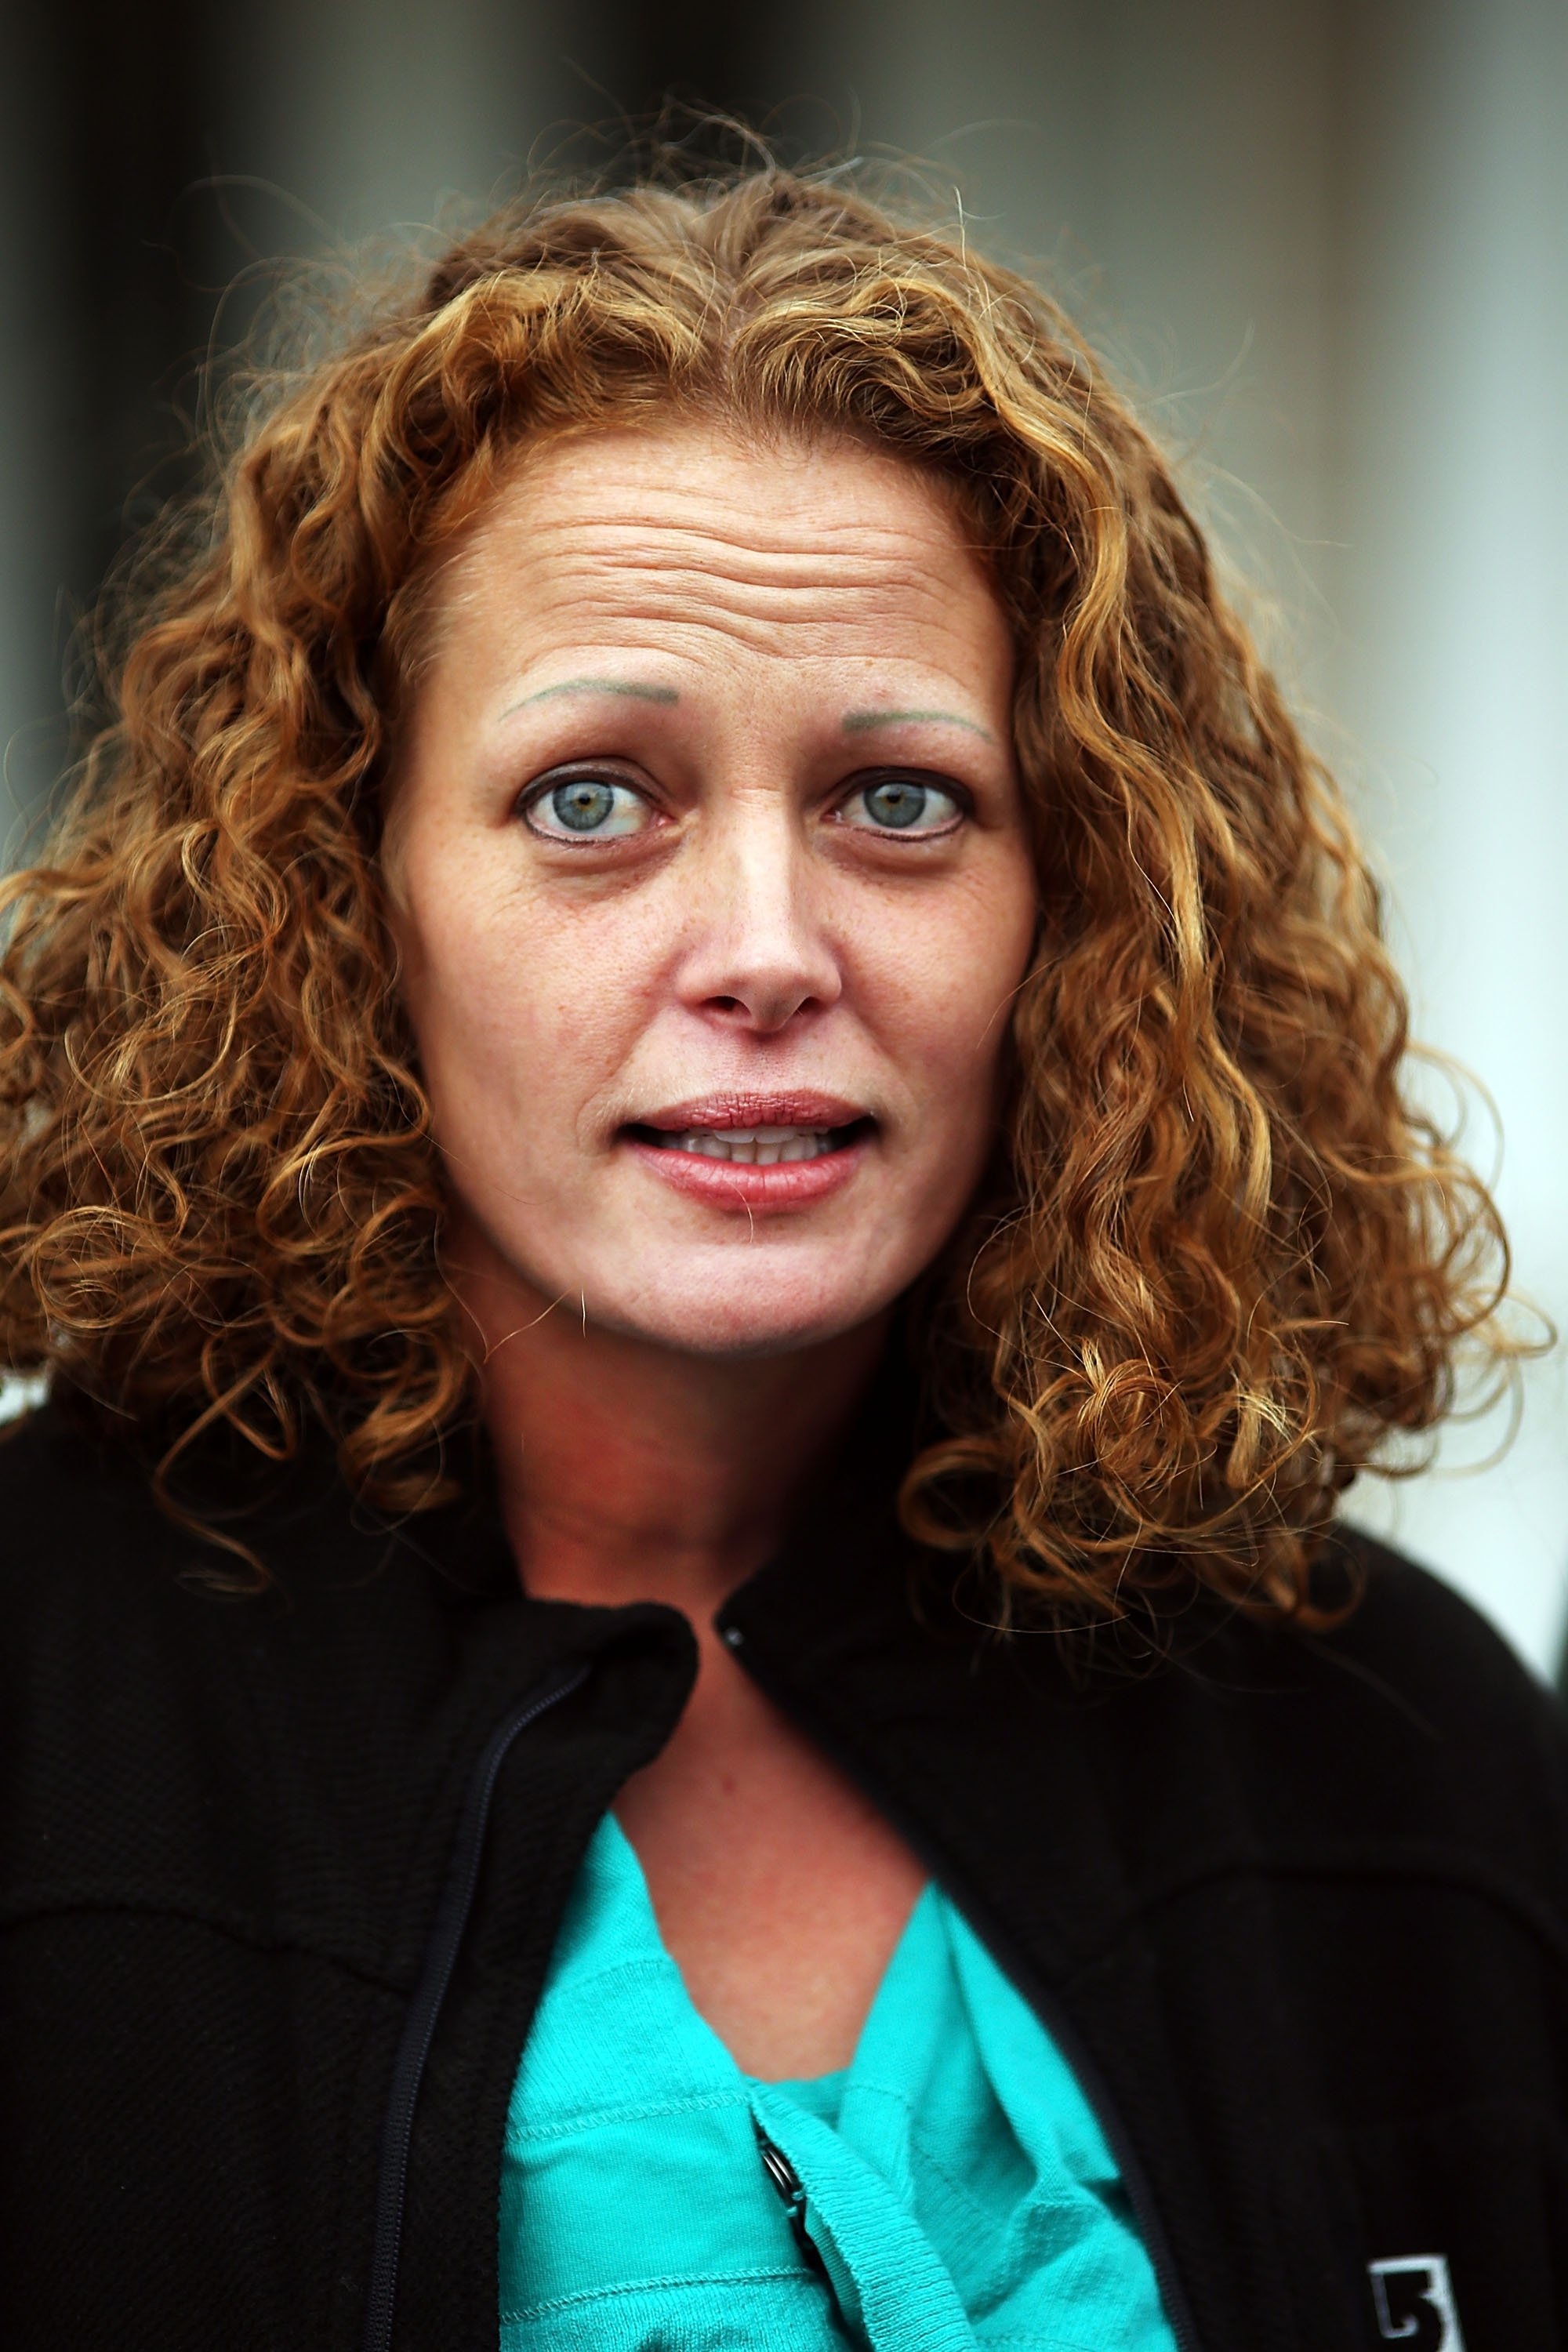 Kaci Hickox gives a statement to the media in front of her home on October 31, 2014 in Fort Kent, Maine.